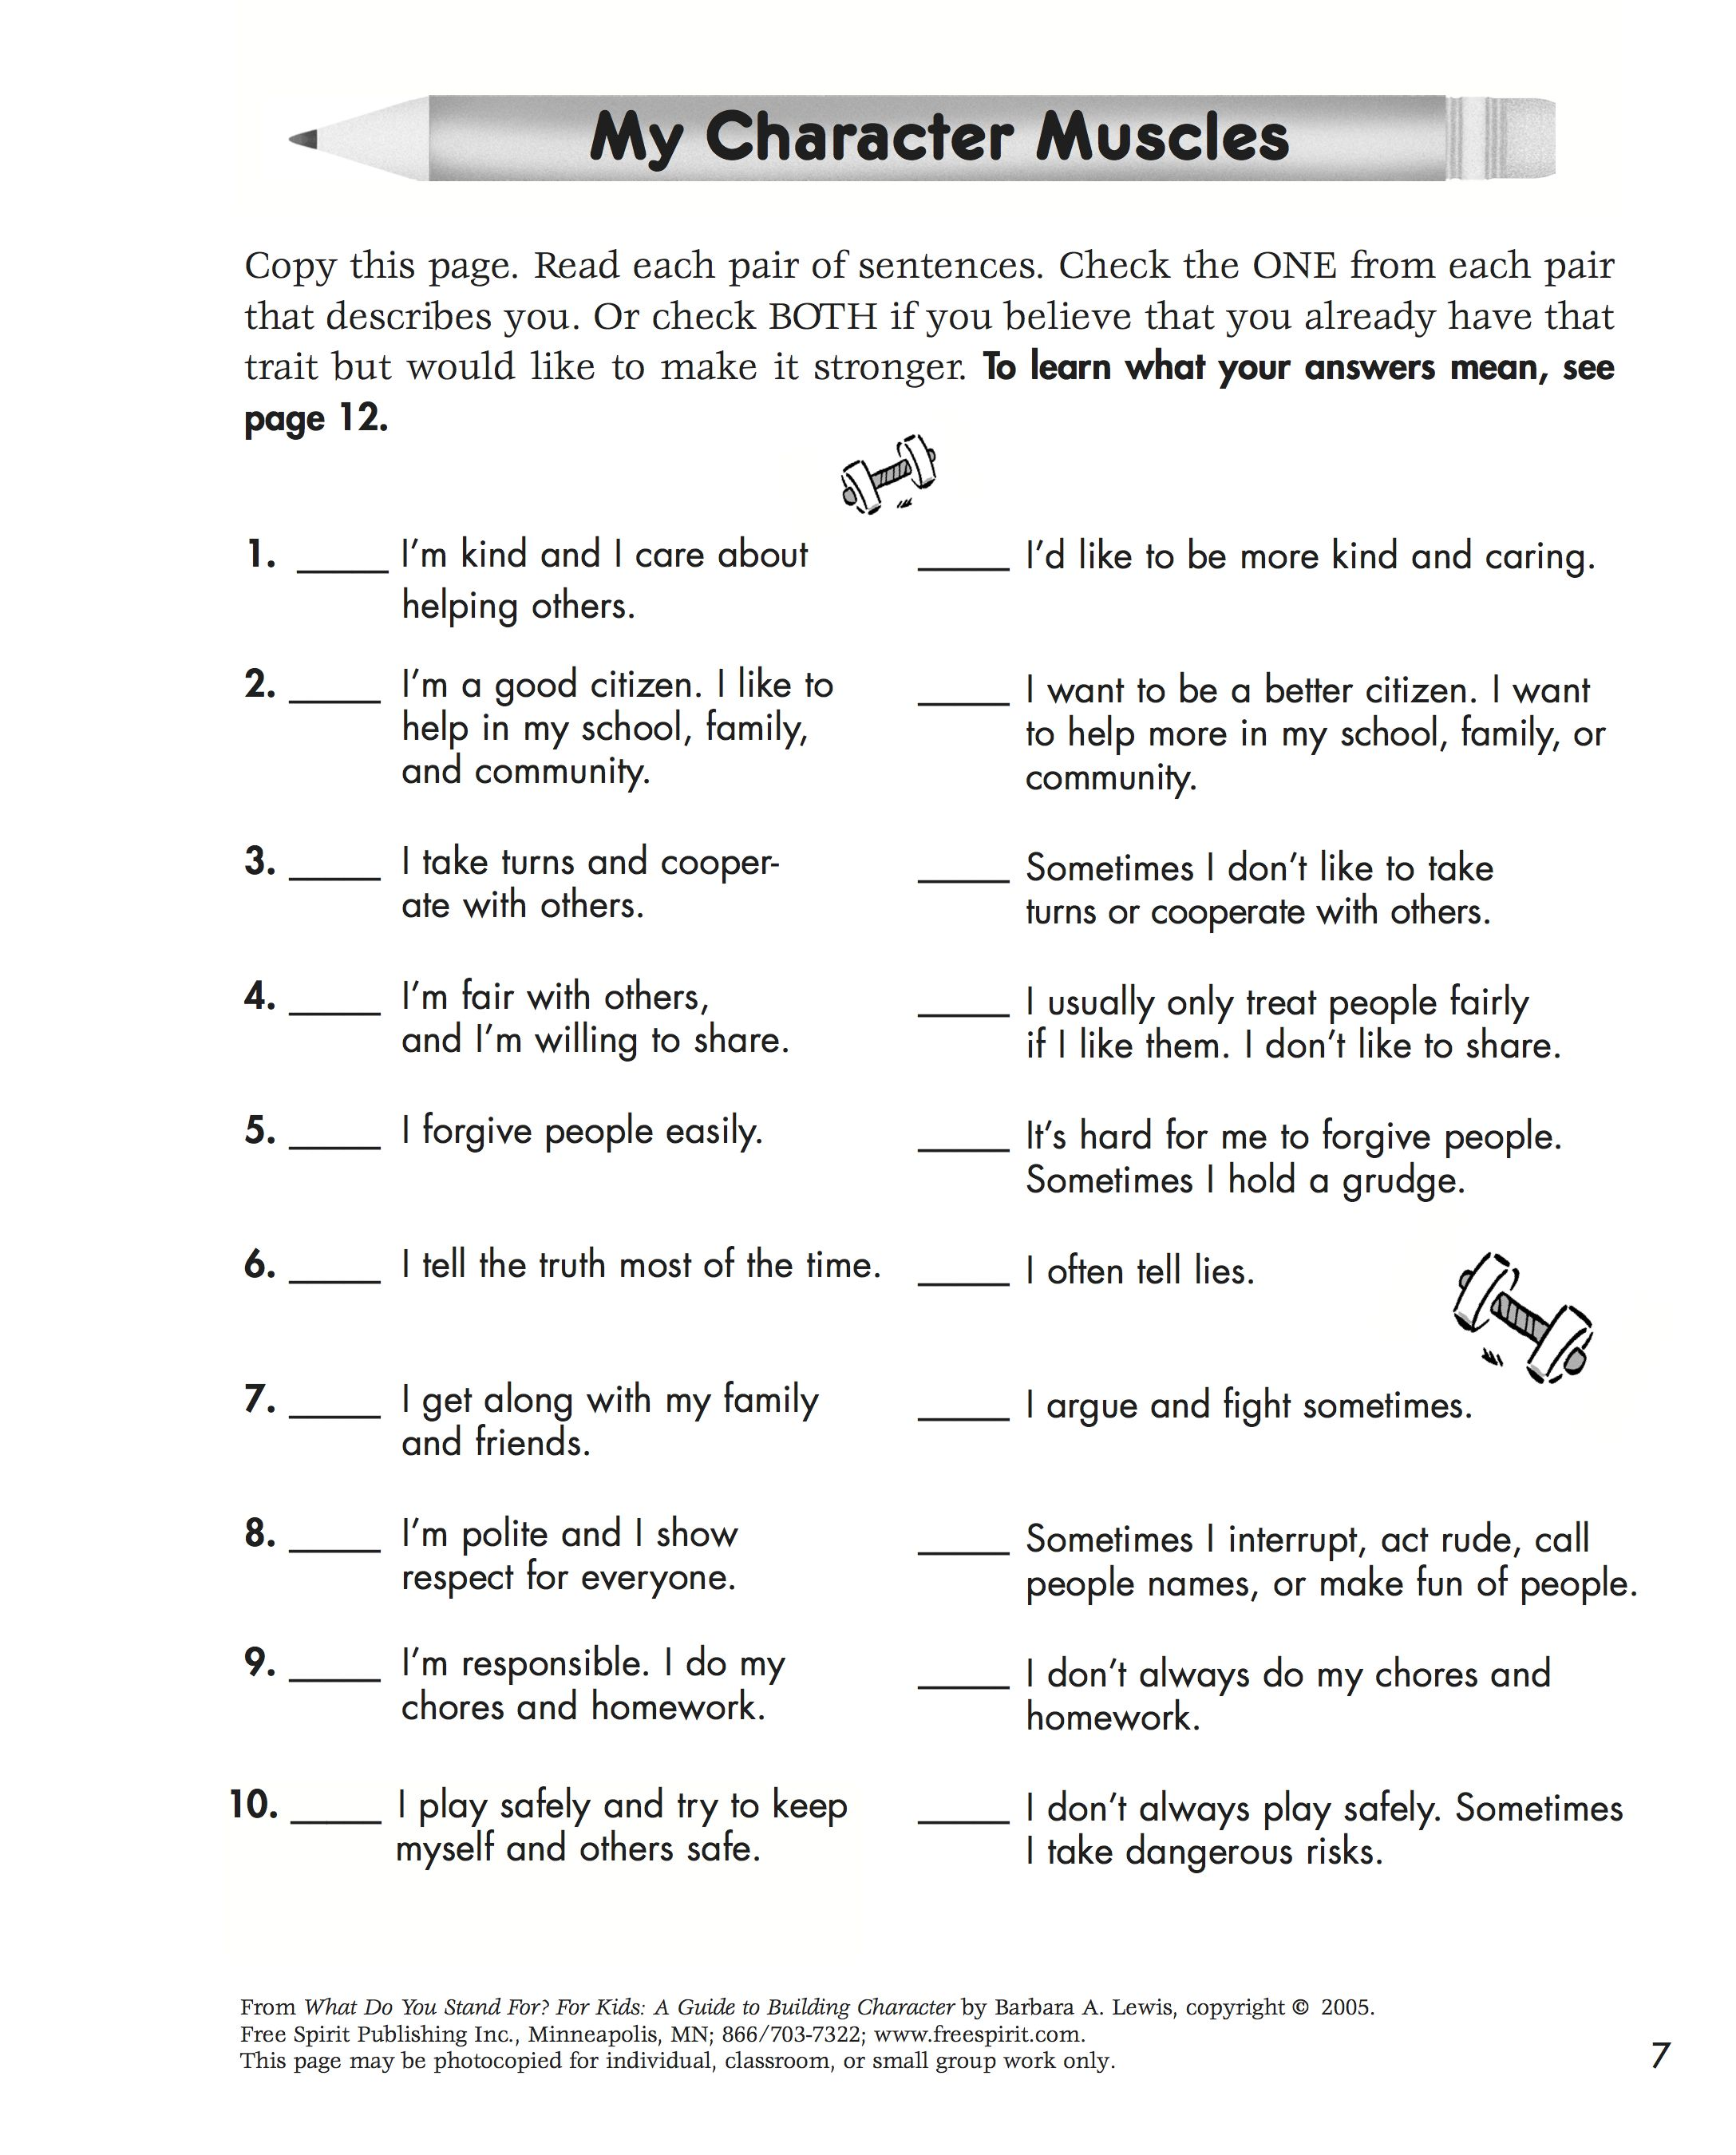 Free Printable Character Education Quiz To Help Kids Learn